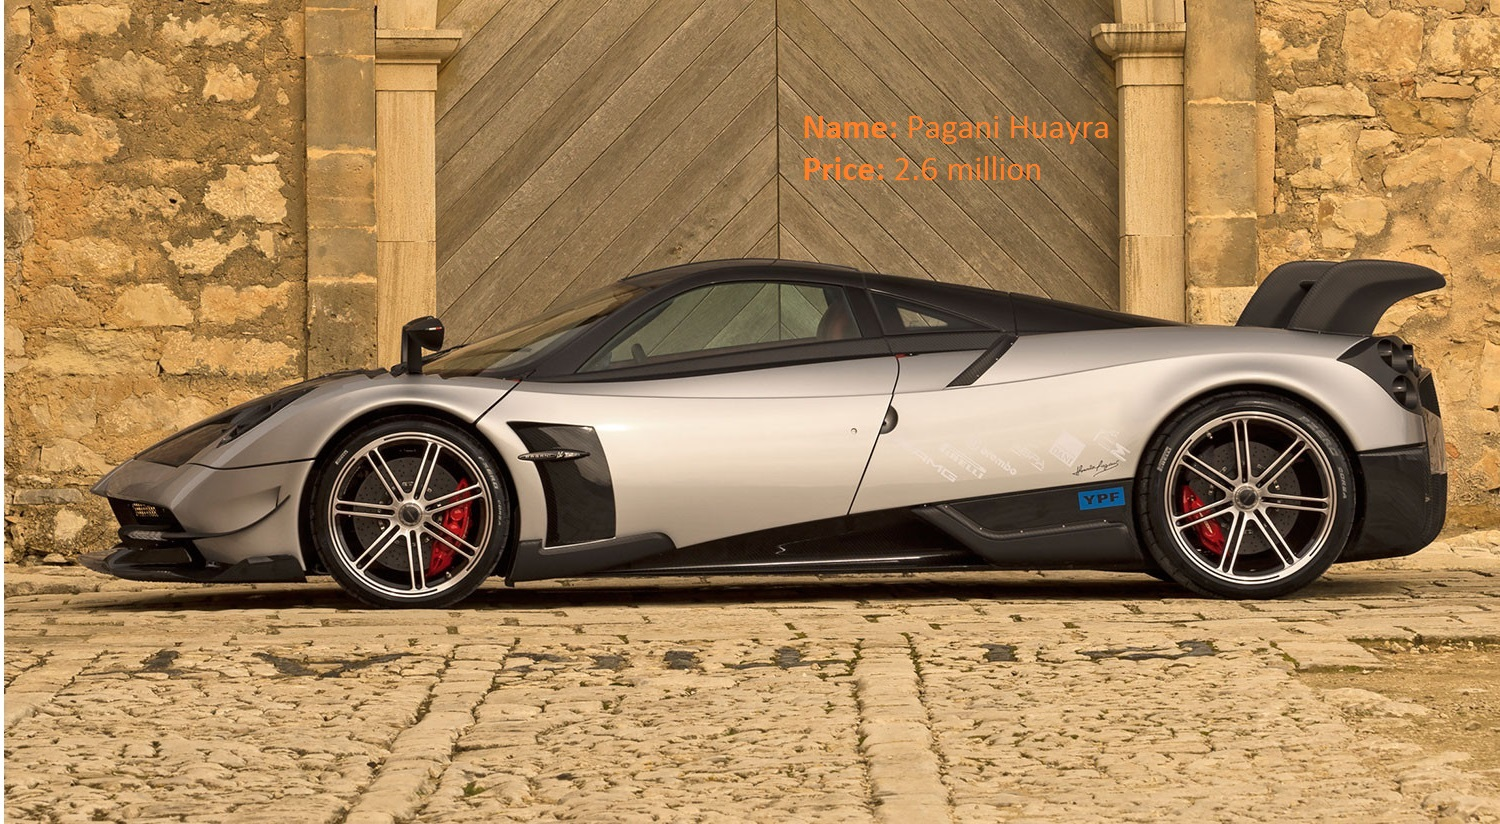 Pagani Huayra Price >> 15 Most Expensive & Beautiful Cars in the World | Mbgadget